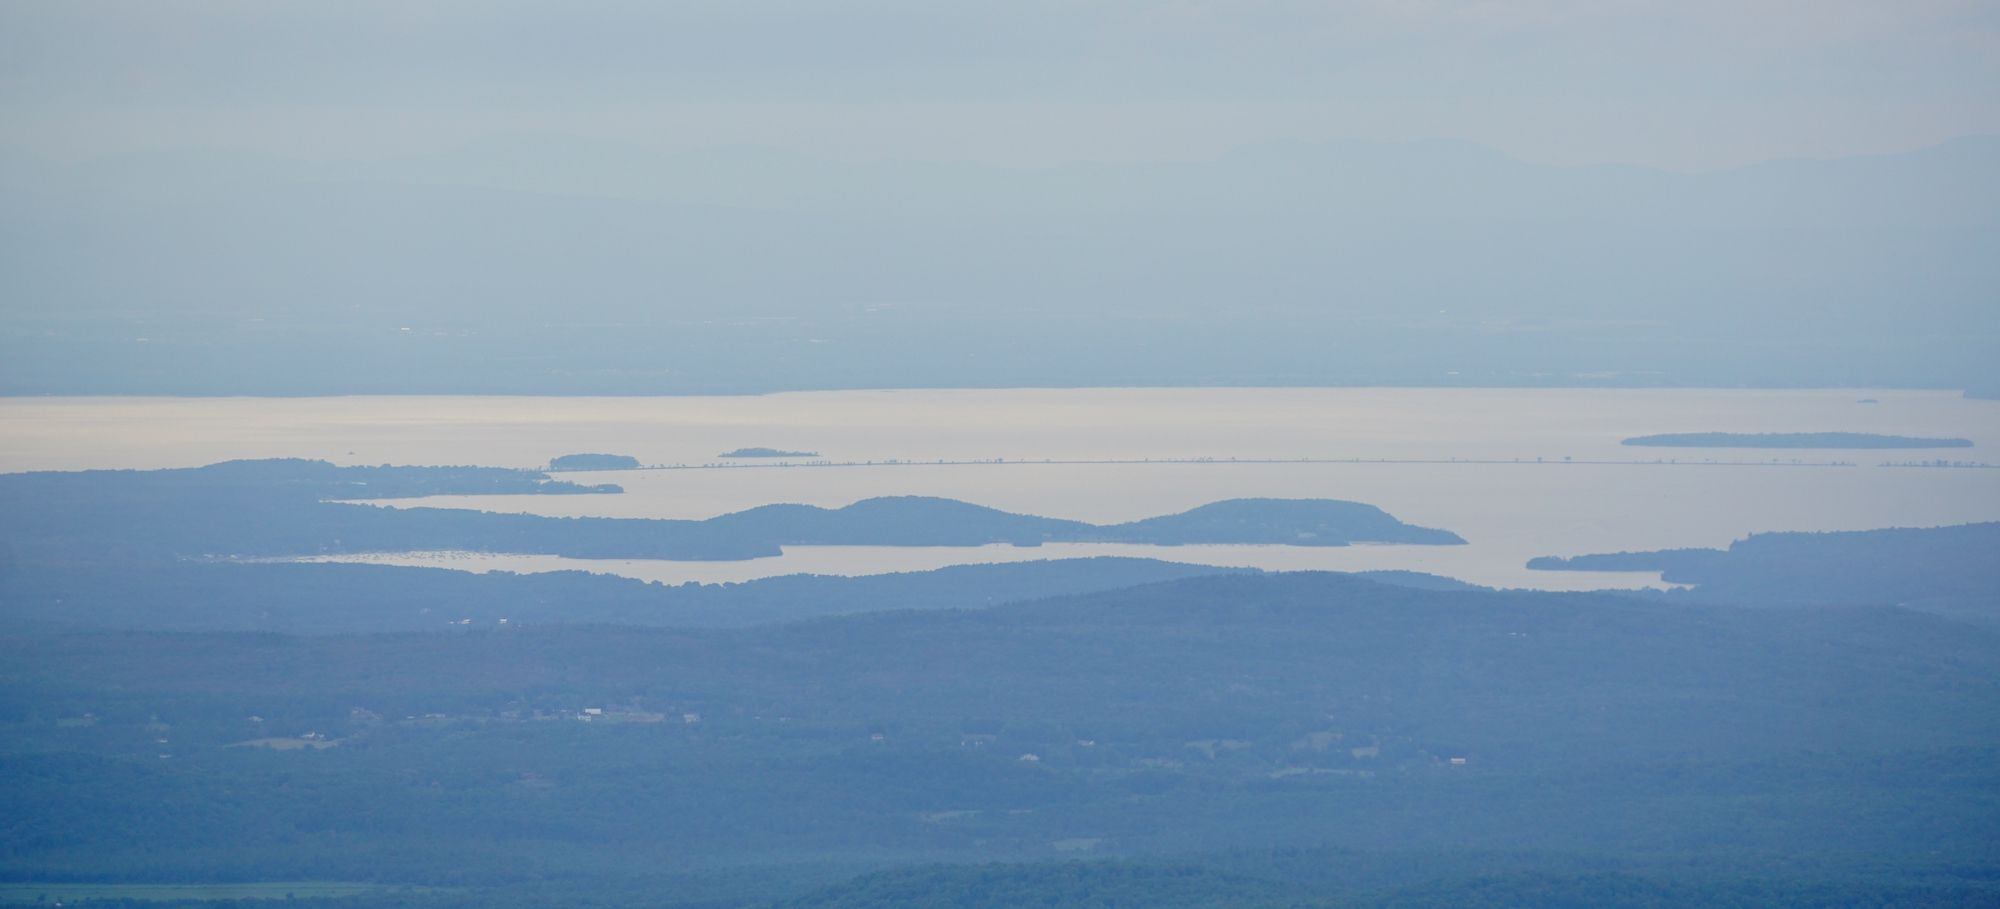 Lake Champlain in the distance from the summit of Mount Mansfield.